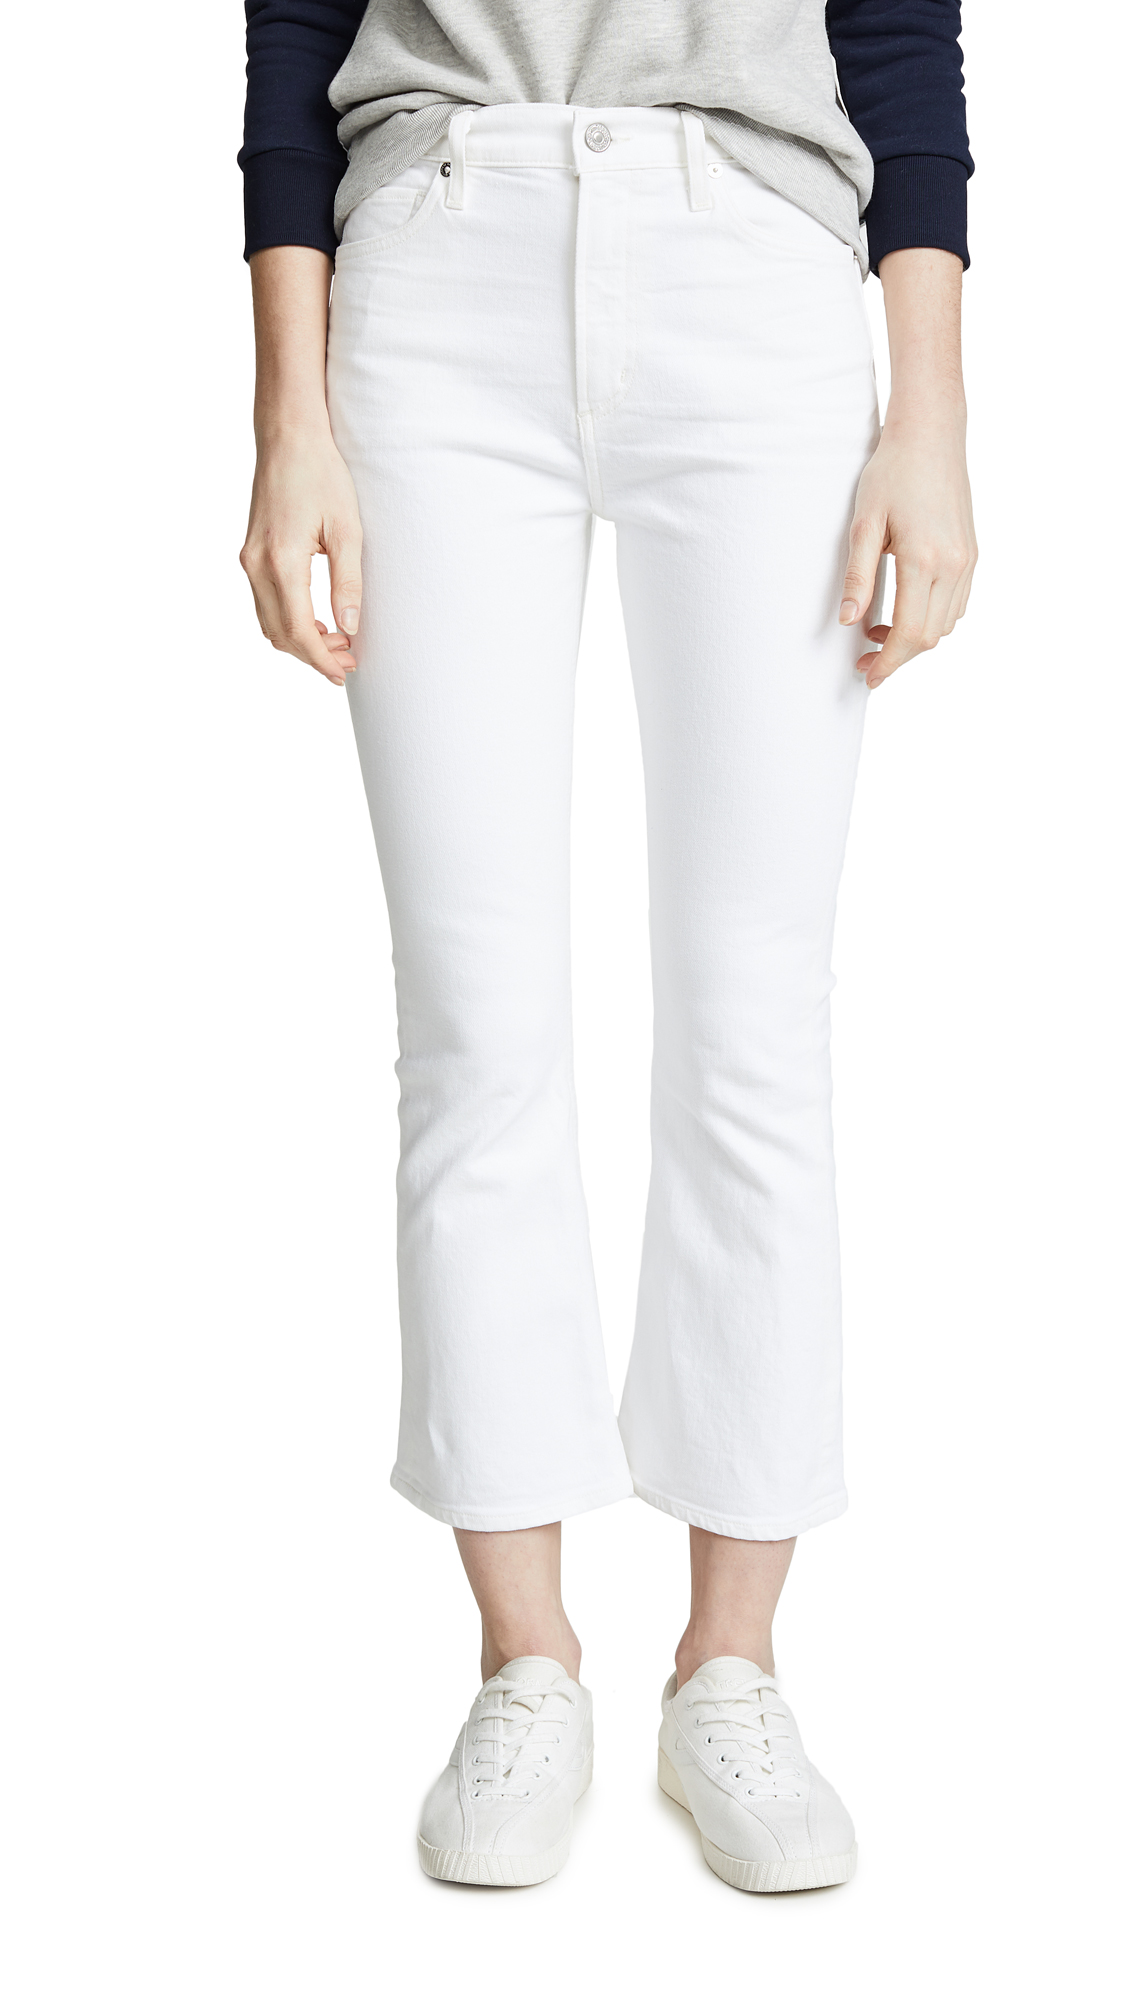 Citizens of Humanity Demy Cropped Flare Jeans - Unveil